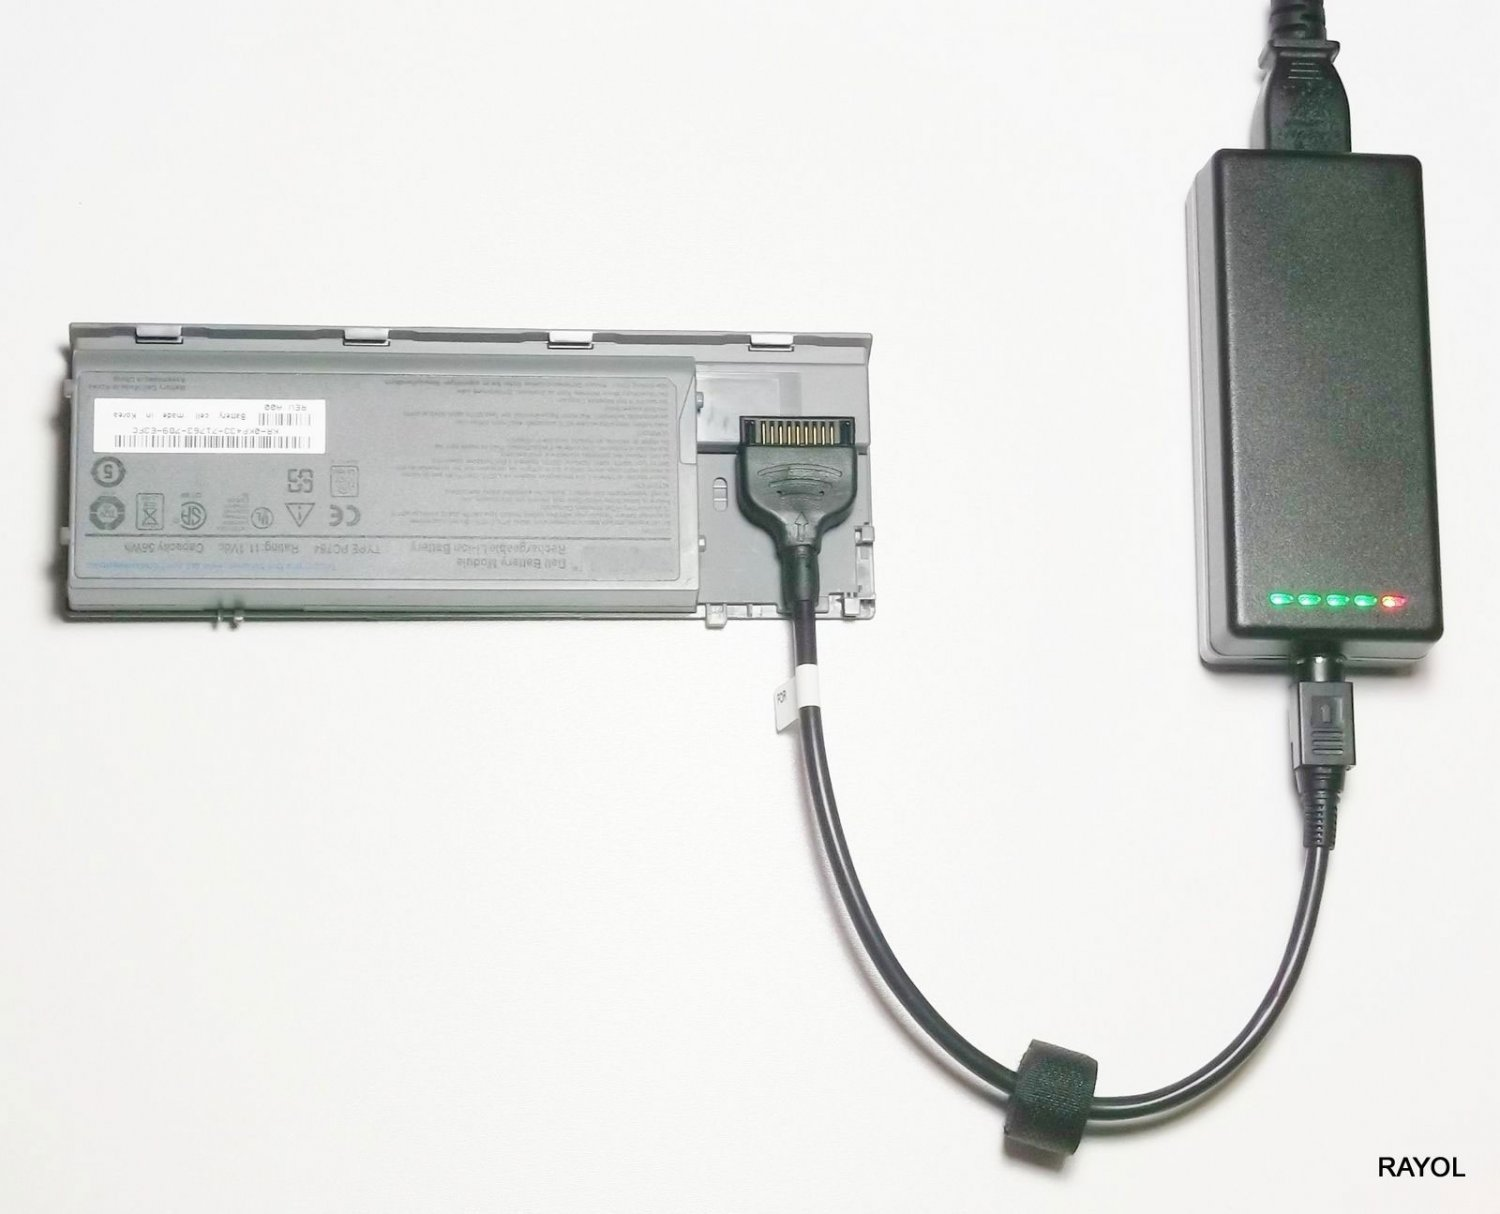 External Laptop Battery Charger for Dell Inspiron 510m Inspiron 600m Latitude D500 D505 D510